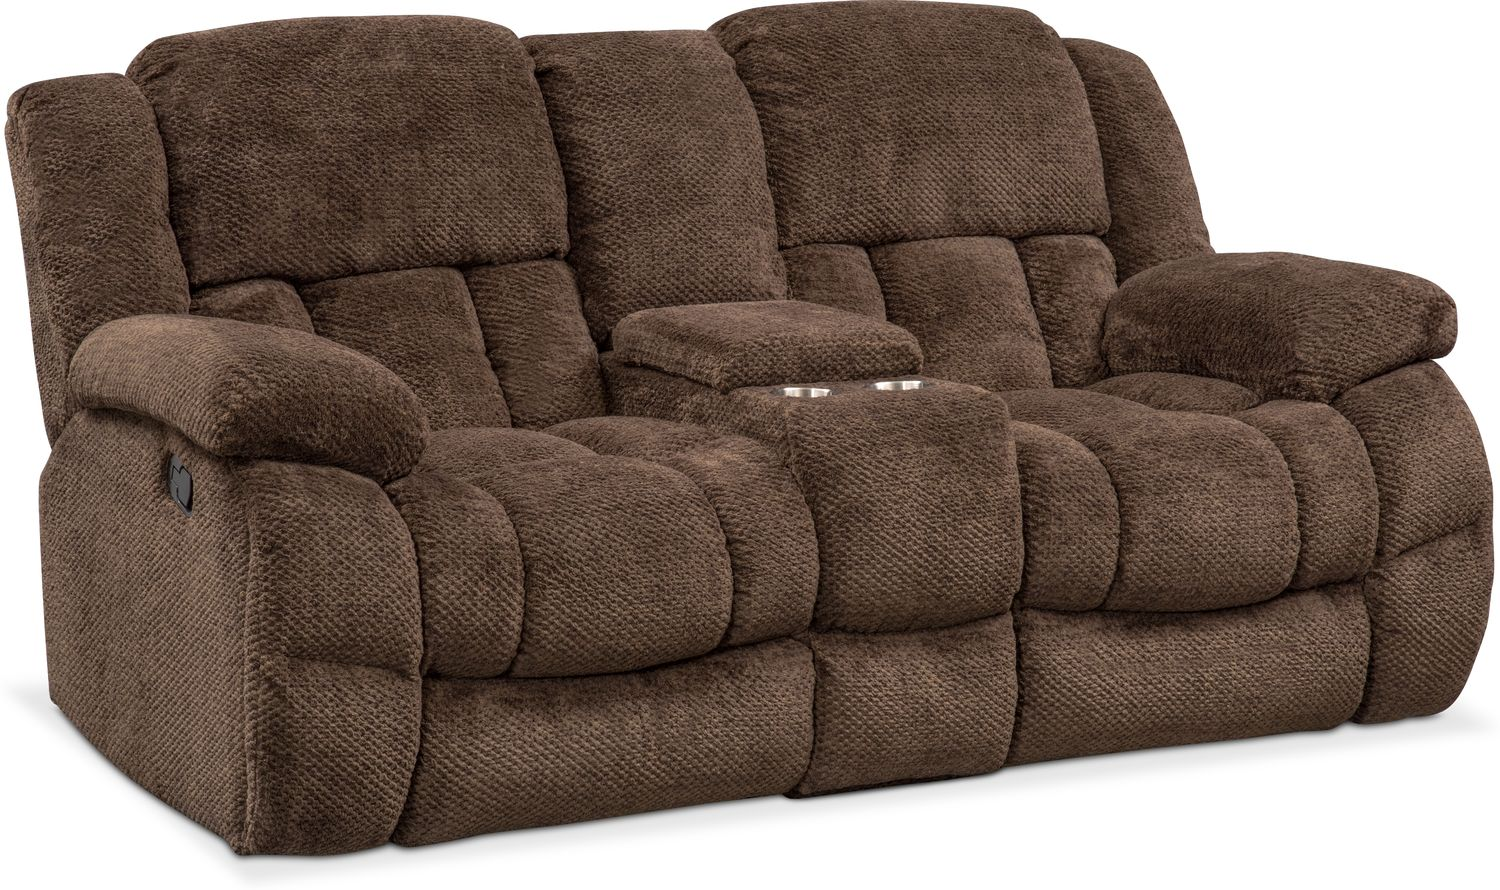 Living Room Furniture - Turbo Reclining Loveseat with Console